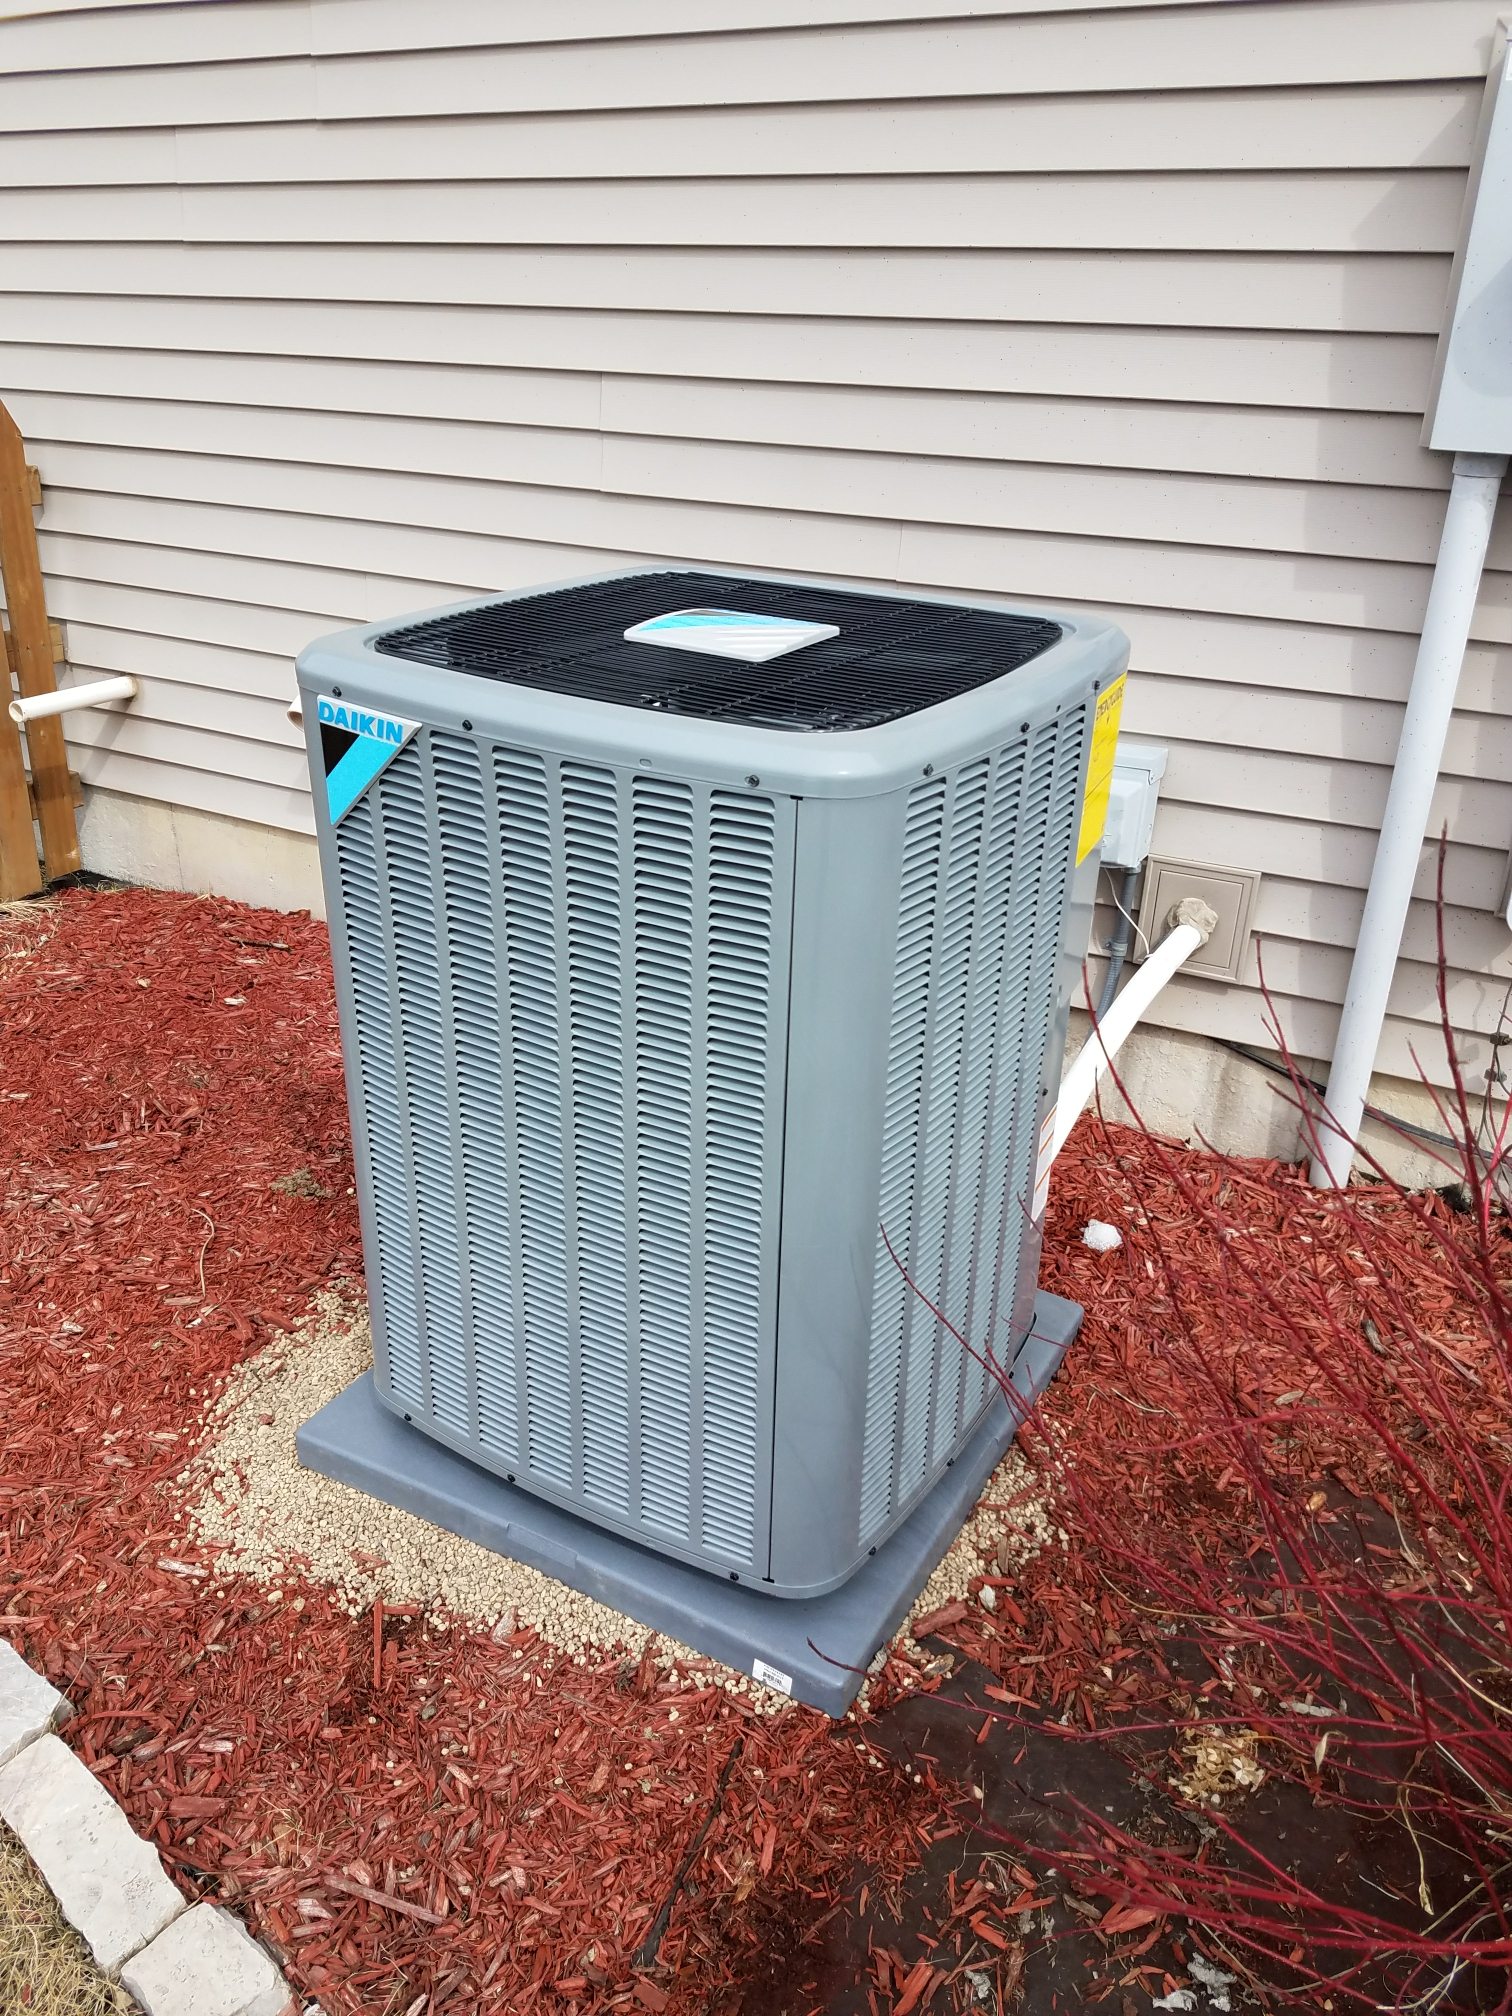 Saint Michael, MN - Install Daikin furnace and air conditioner along with pure air X UV light